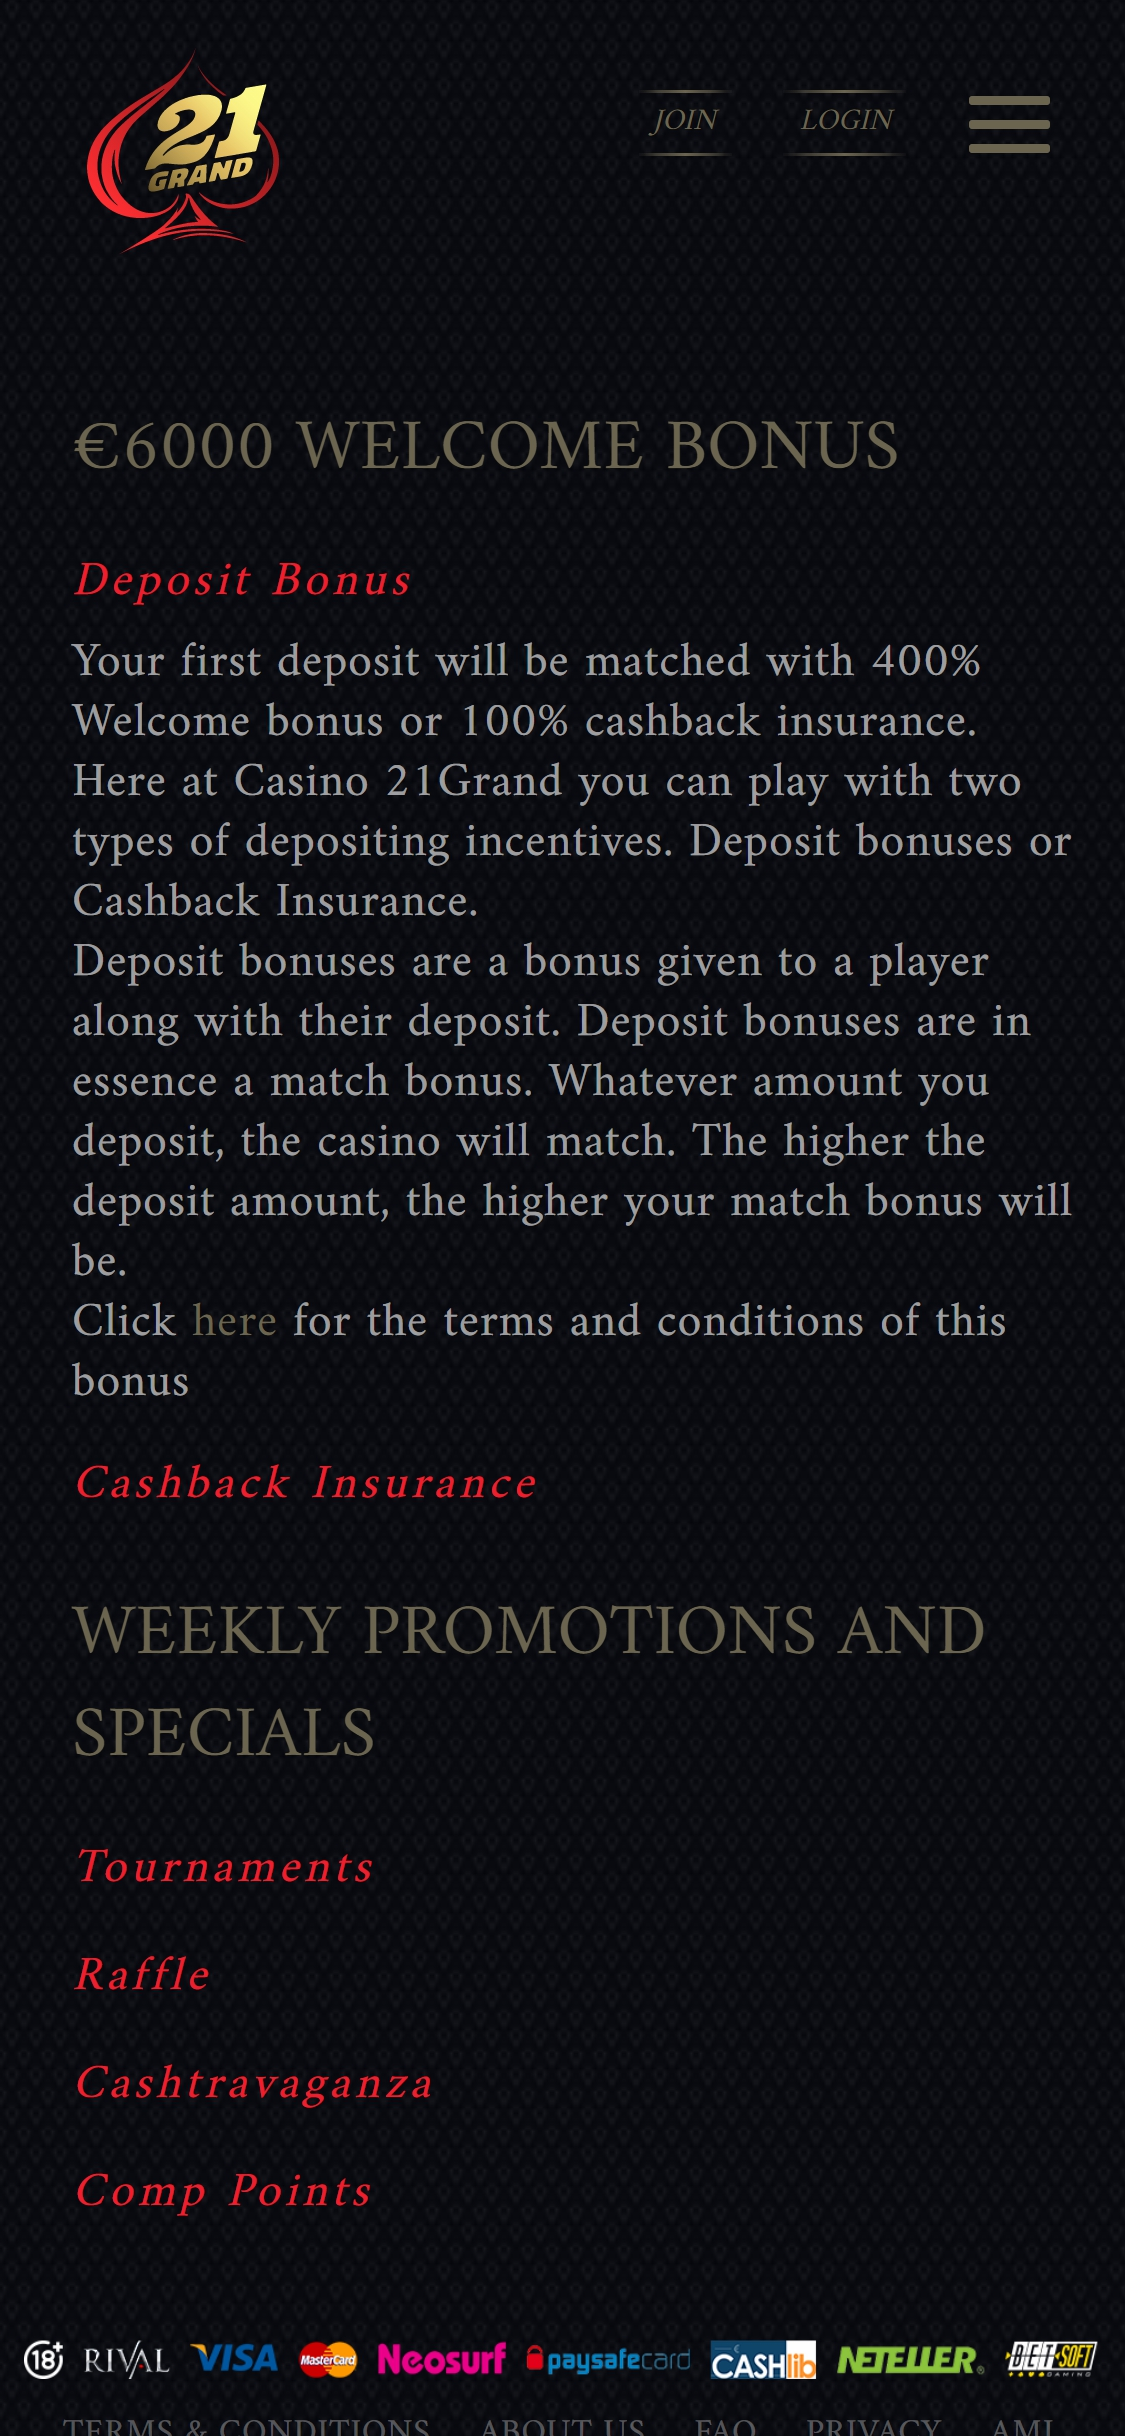 21 Grand Casino Europe No Deposit Bonus